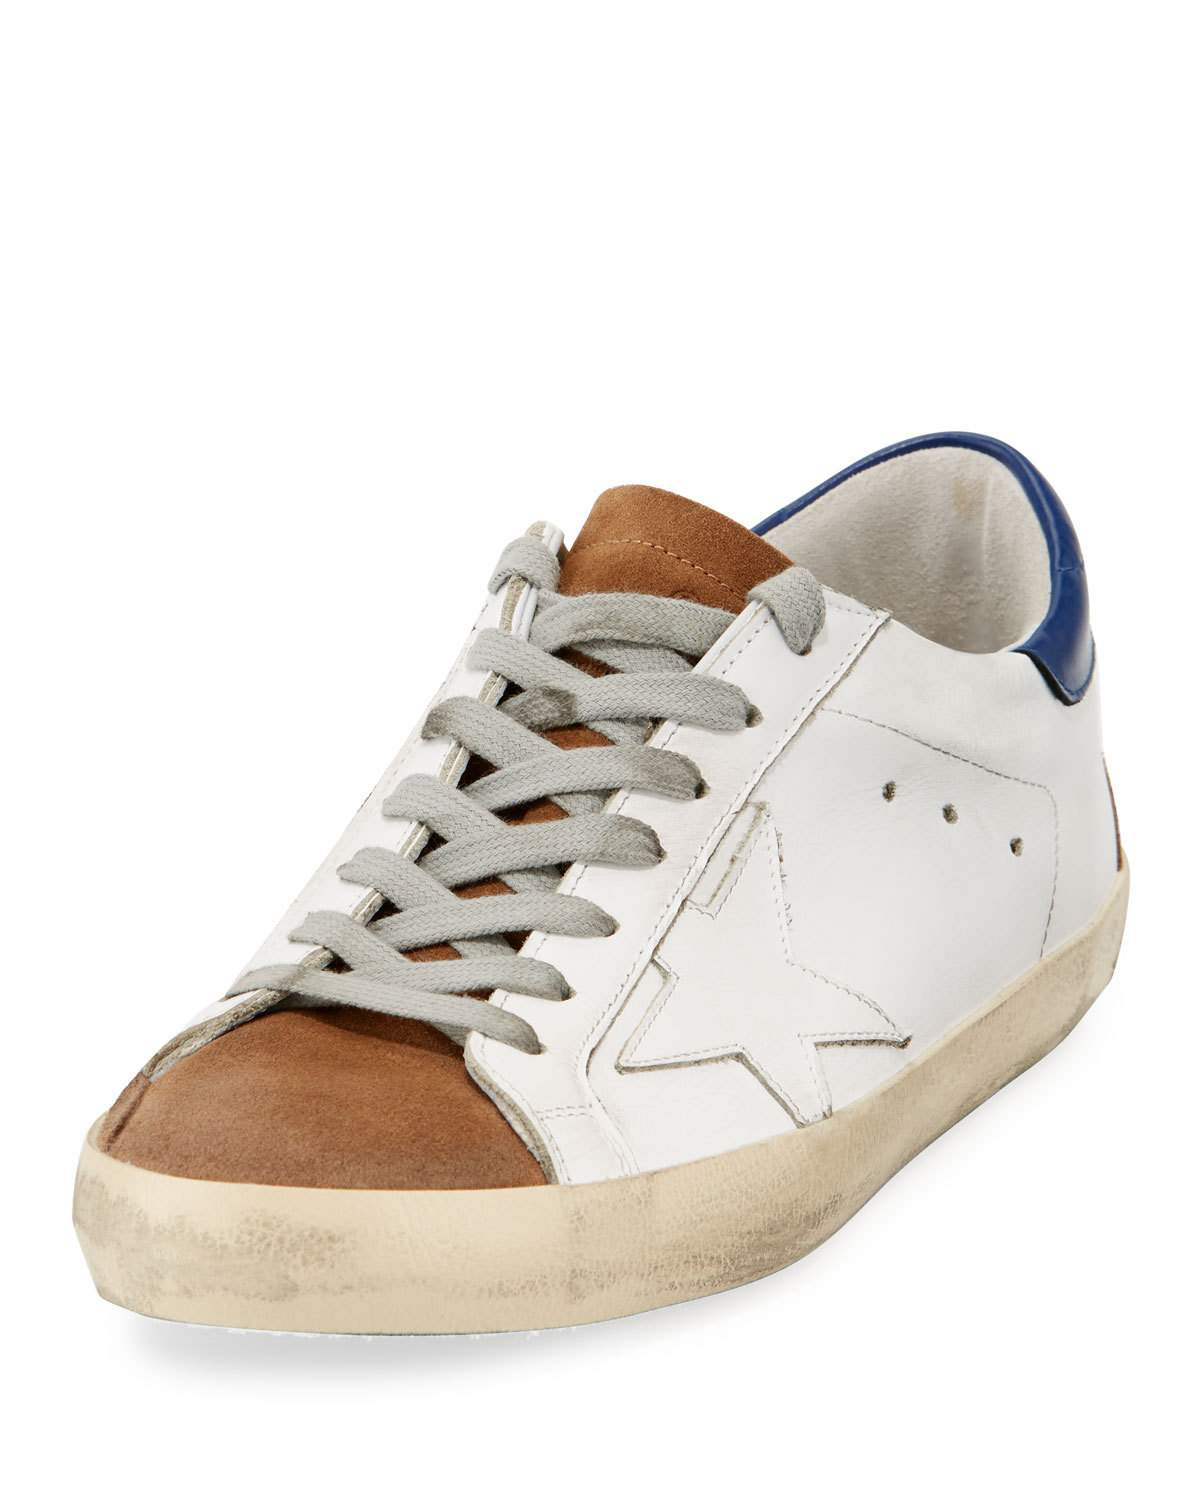 Golden Goose Men's Superstar Tricolor Leather Low-Top Sneakers In White